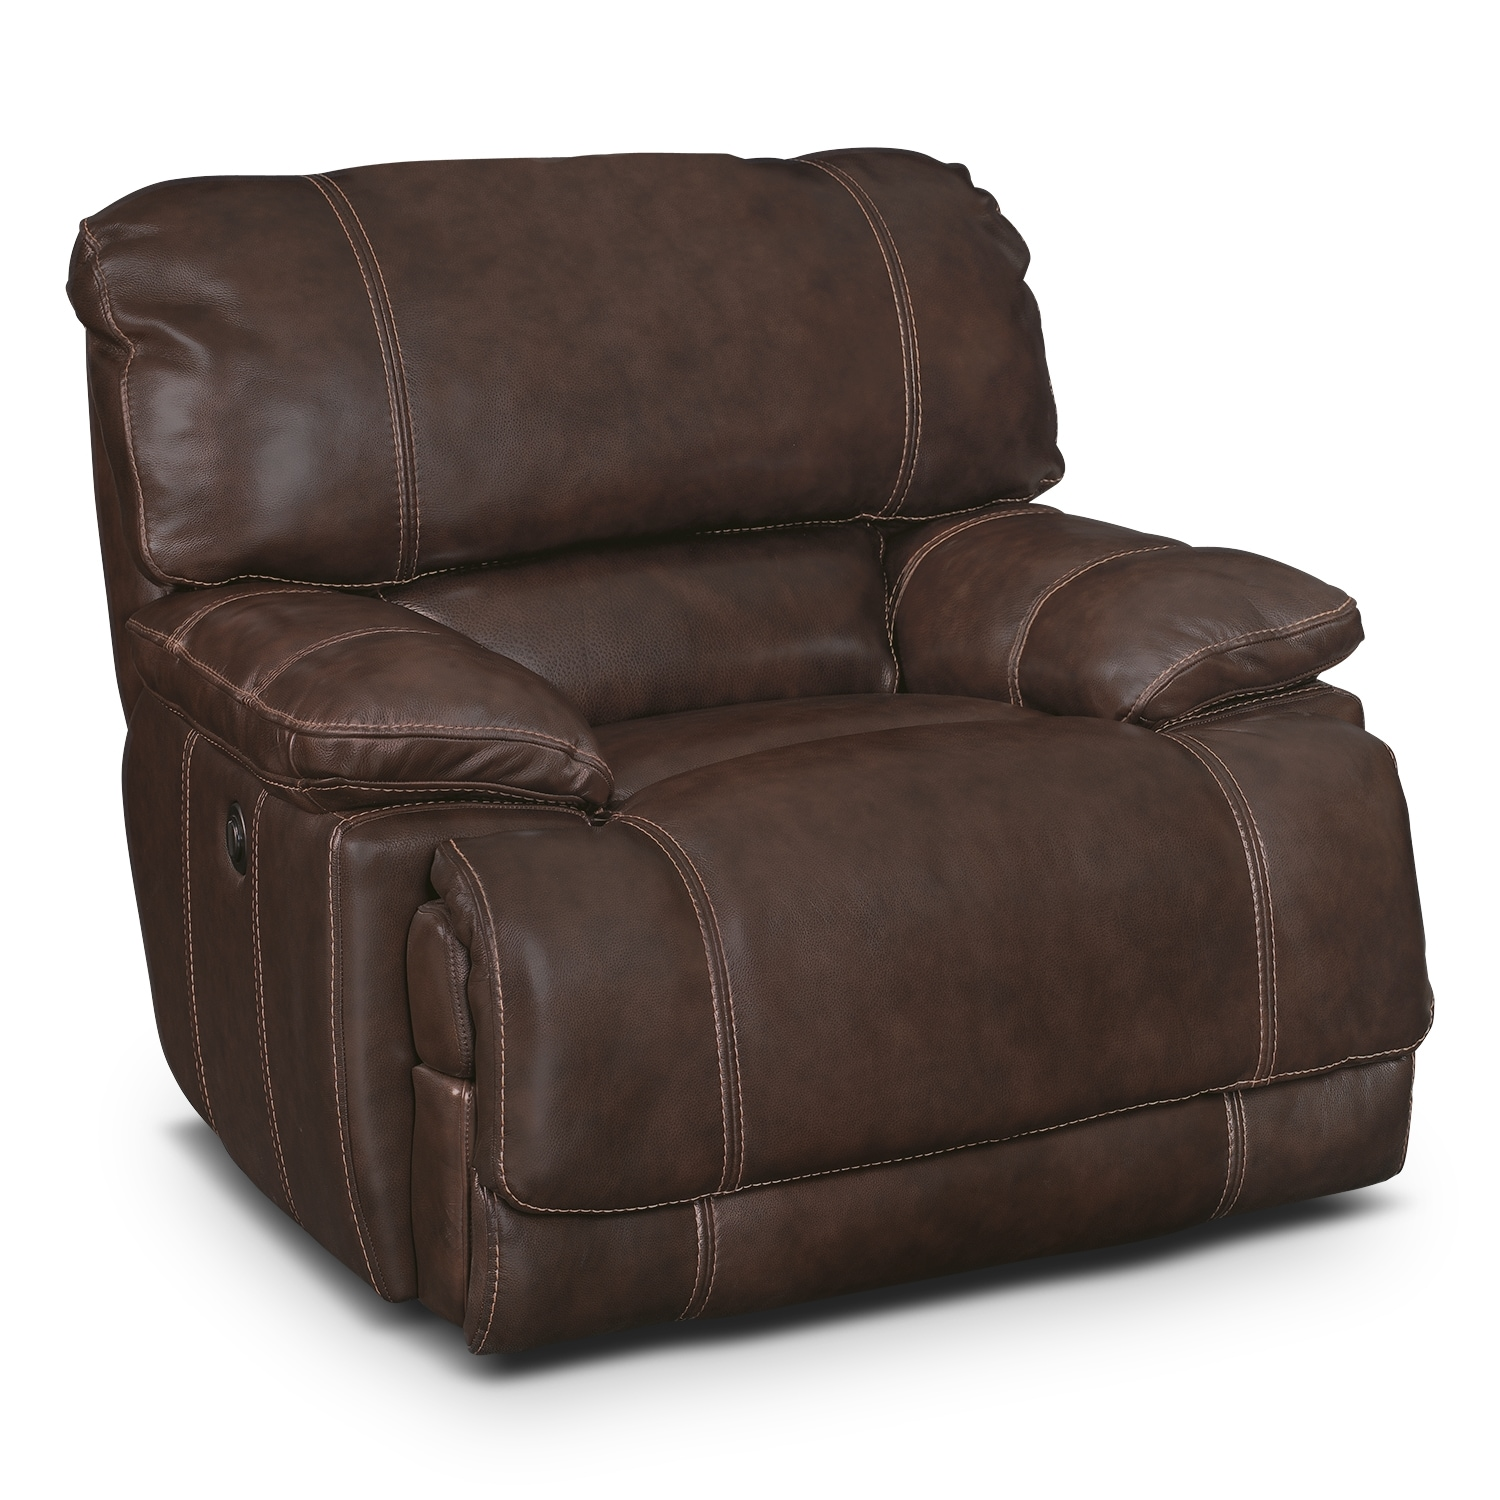 Living Room Furniture - St. Malo Power Recliner - Brown